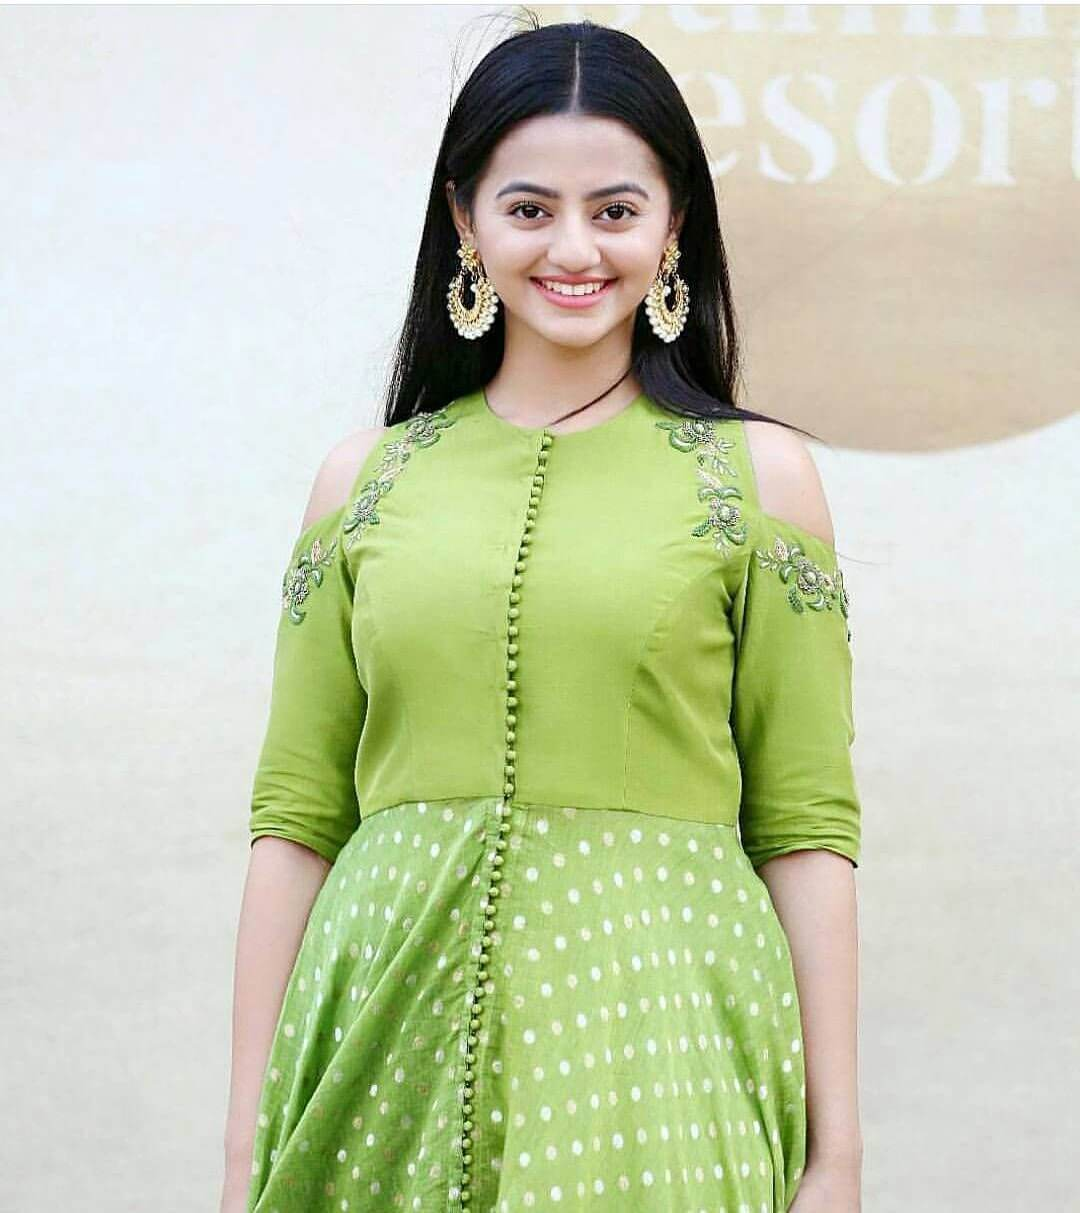 Helly Shah Age, Photos, Biography, Religion, Awards, Family, Height, Birthday, Boyfriend, Net Worth, Education, Instagram, Twitter, Facebook, Wiki, Imdb (9)